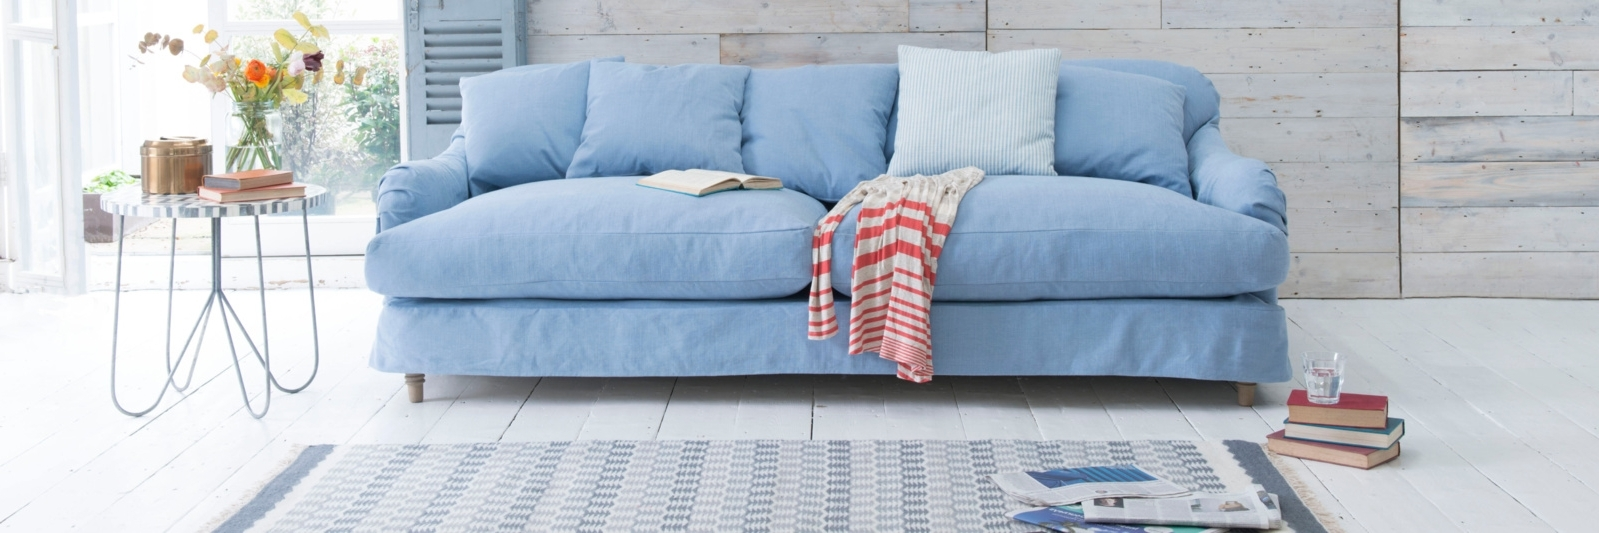 Sofas With Washable Covers Pertaining To Trendy Washable Slipcovered Sofas Machine Washable Sectional White (View 2 of 20)